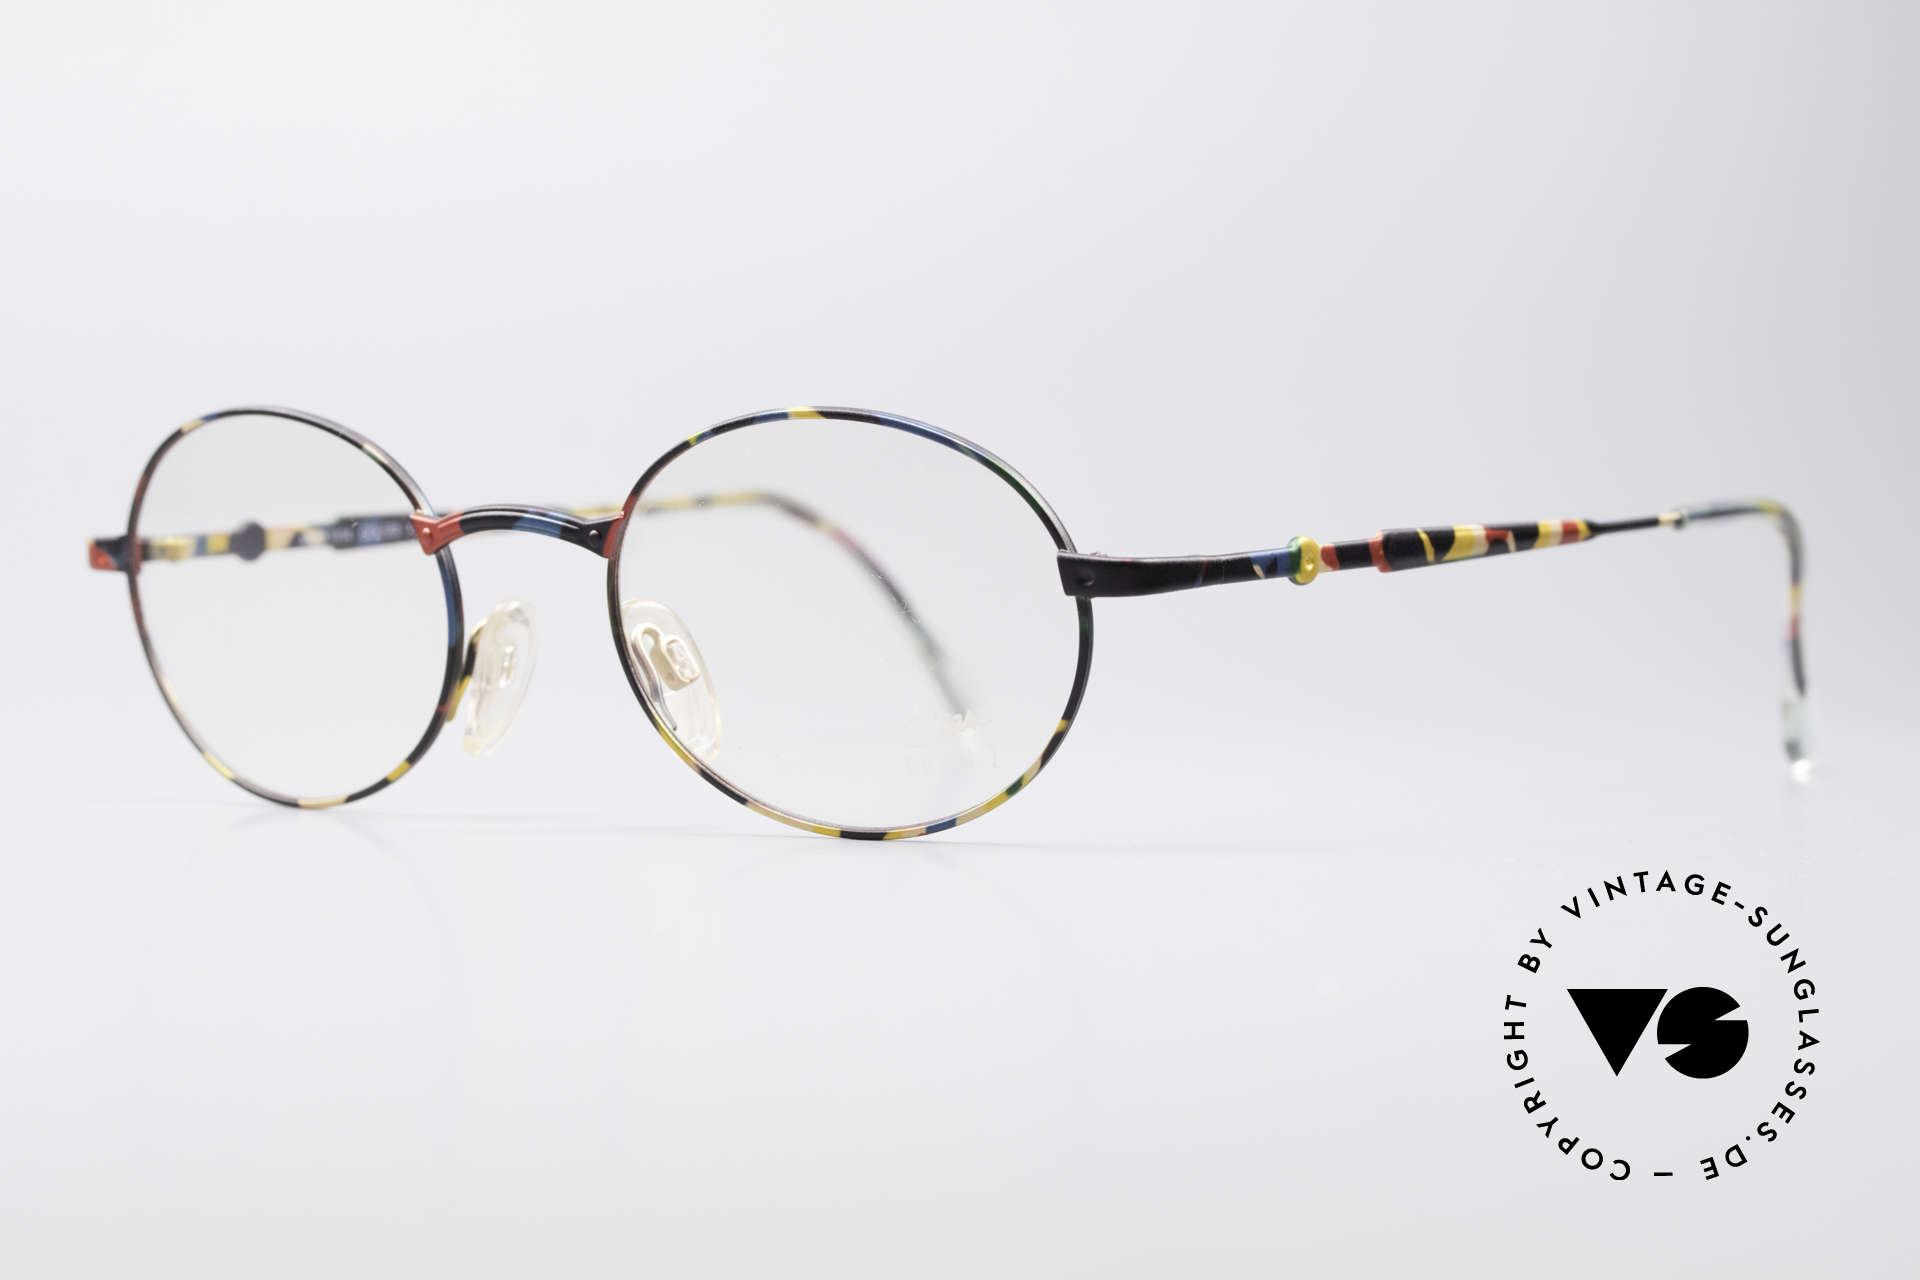 Cazal 1114 - Point 2 Round Oval Vintage Frame, plain design with clear and pures lines; just timeless!, Made for Men and Women